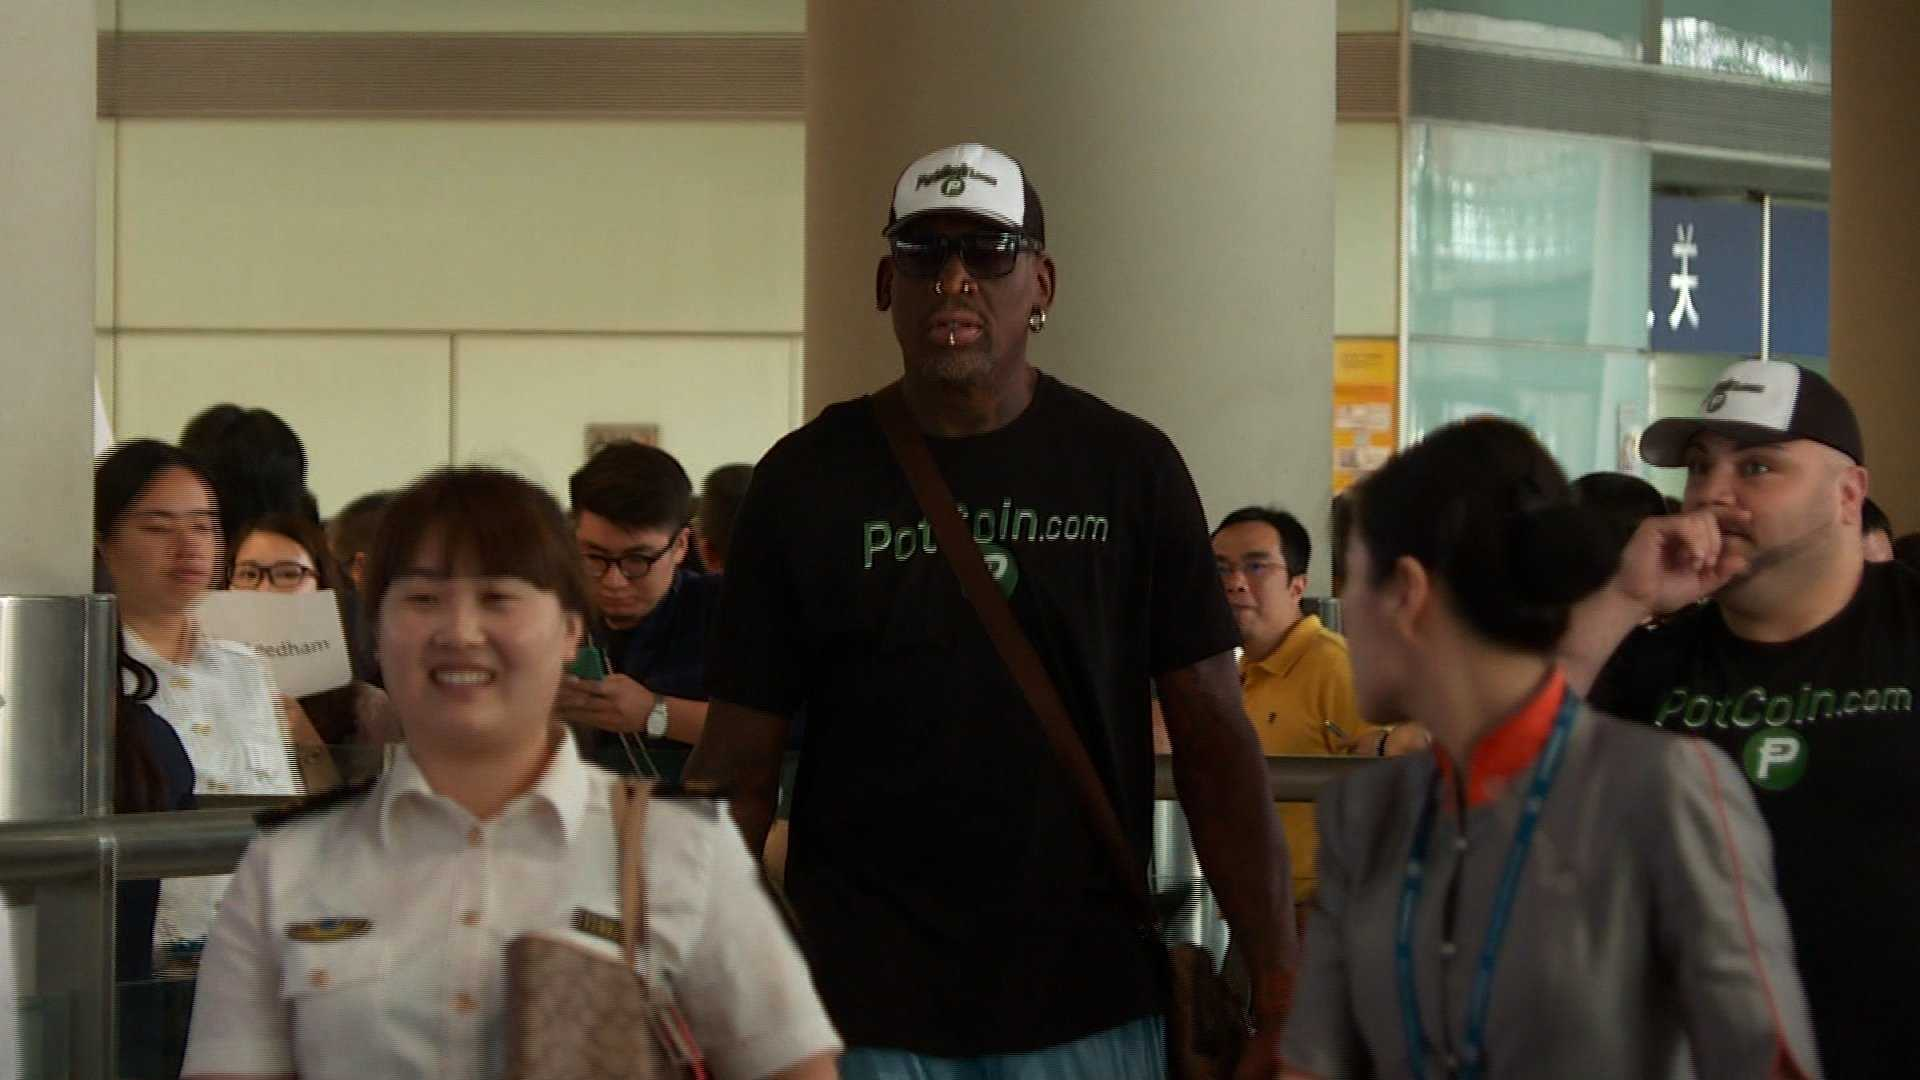 Rodman's trip backed by digital currency for weed